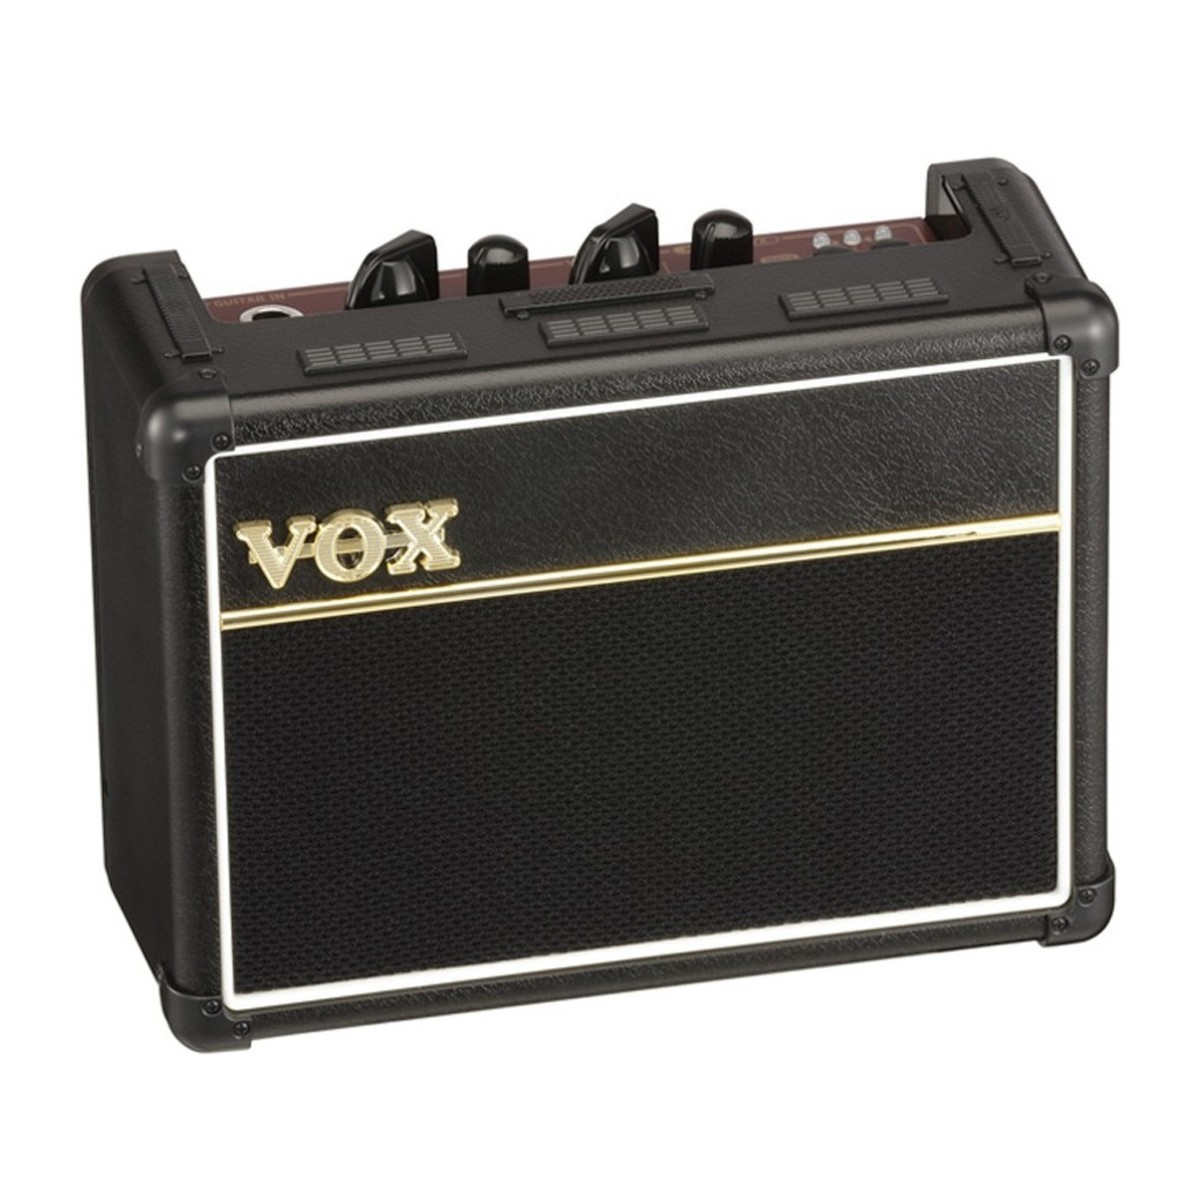 vox ac2 rhythmvox mini guitar amp at gear4music. Black Bedroom Furniture Sets. Home Design Ideas